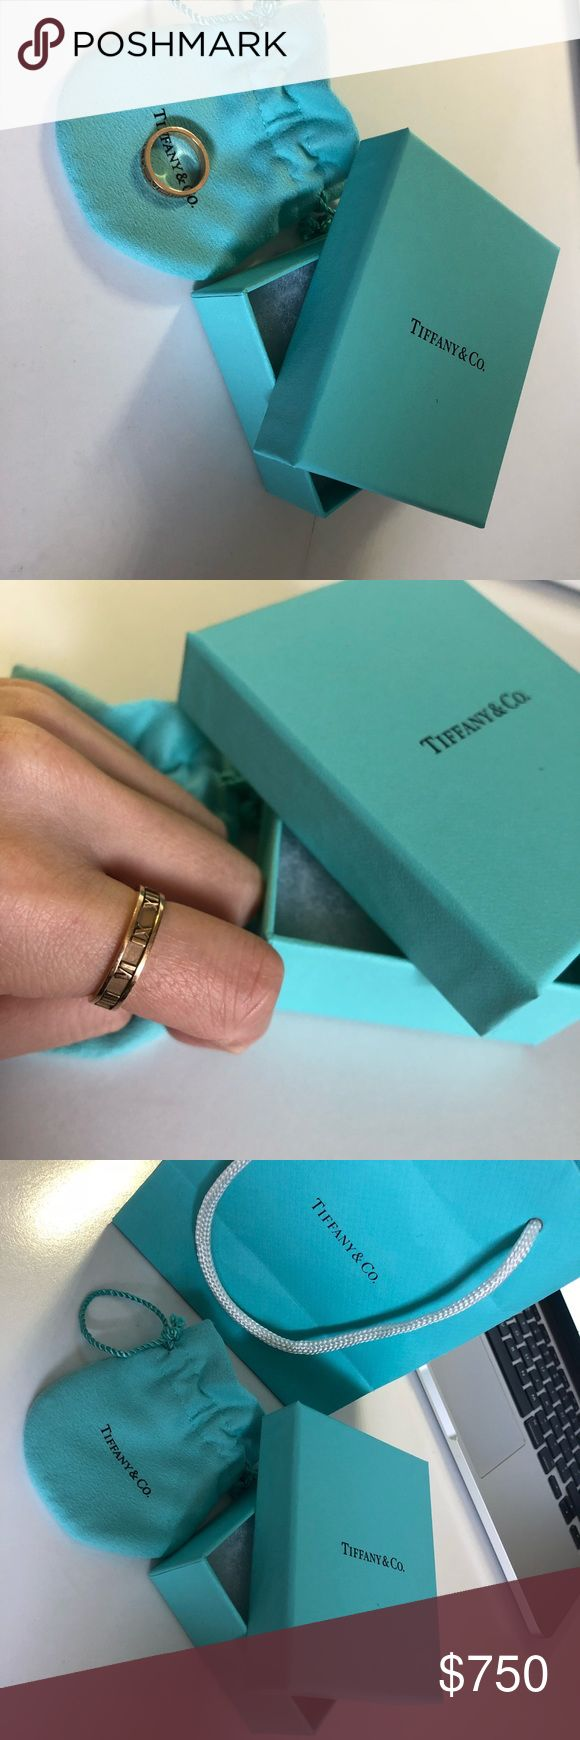 Tiffany&co Atlas Ring Sz6.5 18k RoseGold Tiffany & Co atlas collection rose gold 18k.  Come with og dust bag, box, paper bag.  Bought from Chicago retail store with receipt. Retail price is $975.  Very good condition less than 10 times worn and you can alway bring it to Tiffany store for cleaning.  Contact me if you interested! Tiffany & Co. Jewelry Rings